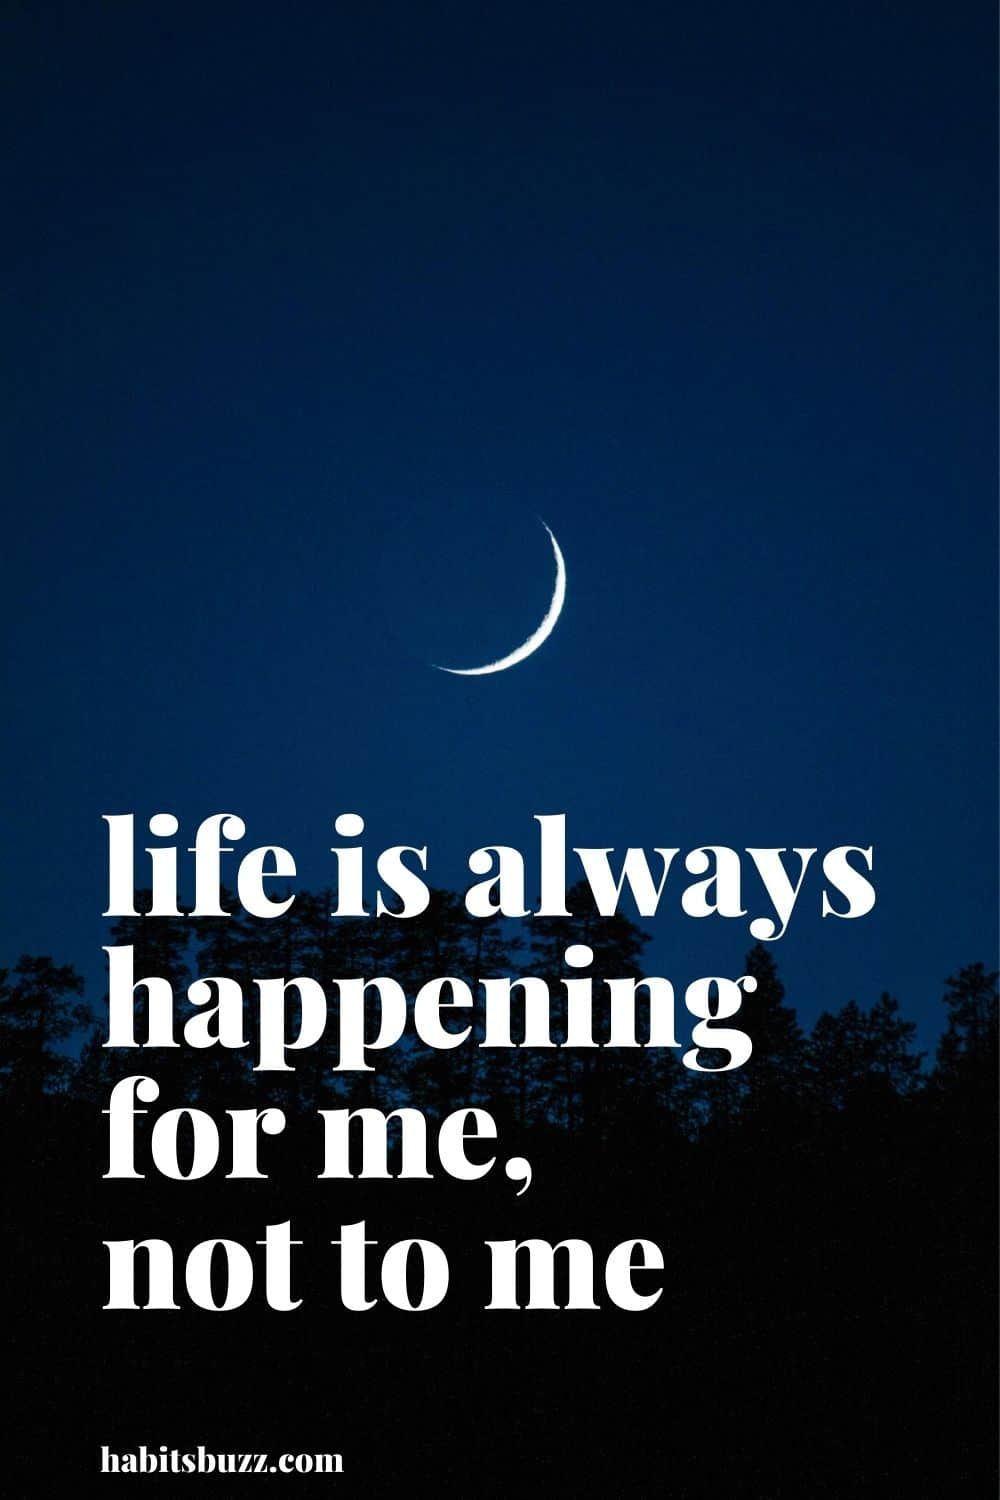 life is always happening for me, not to me - mantras to get through bad days in life